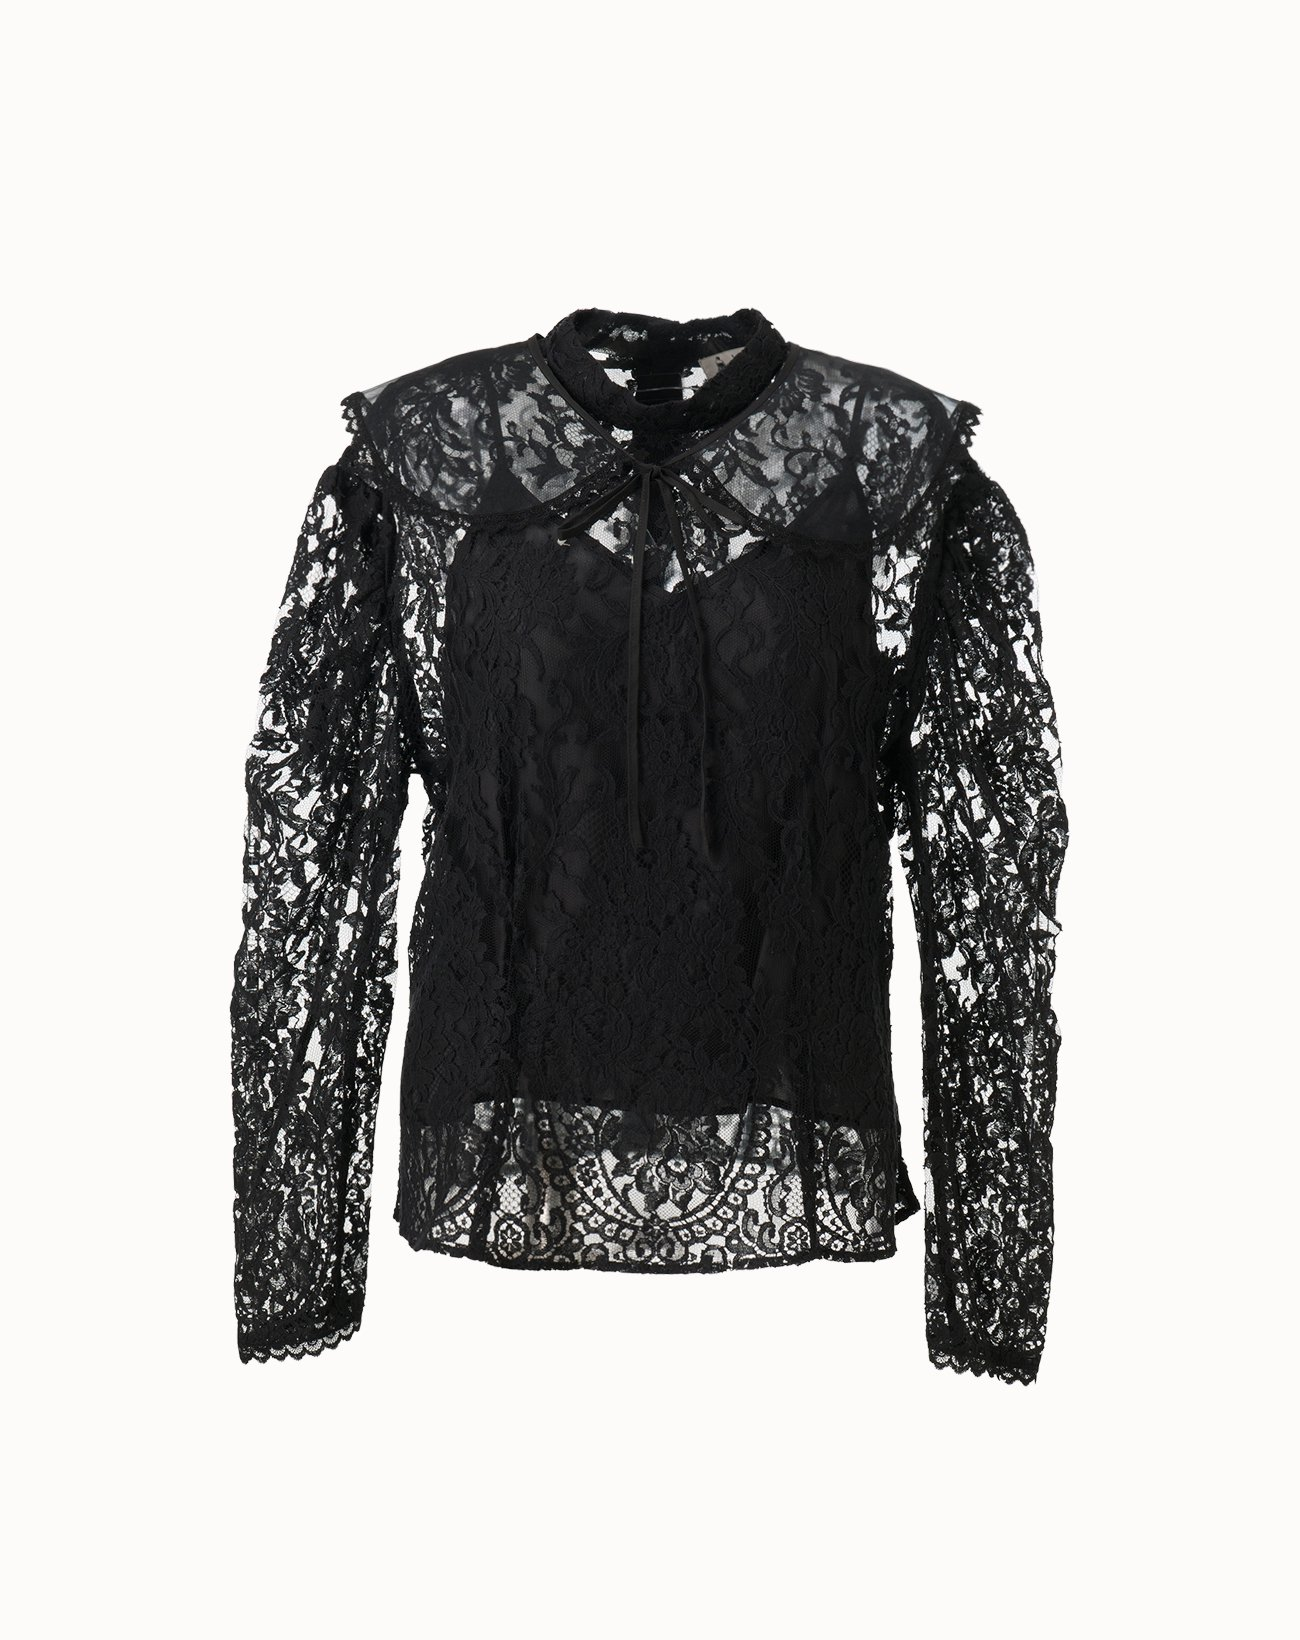 Lace Blouse with Cape - Black